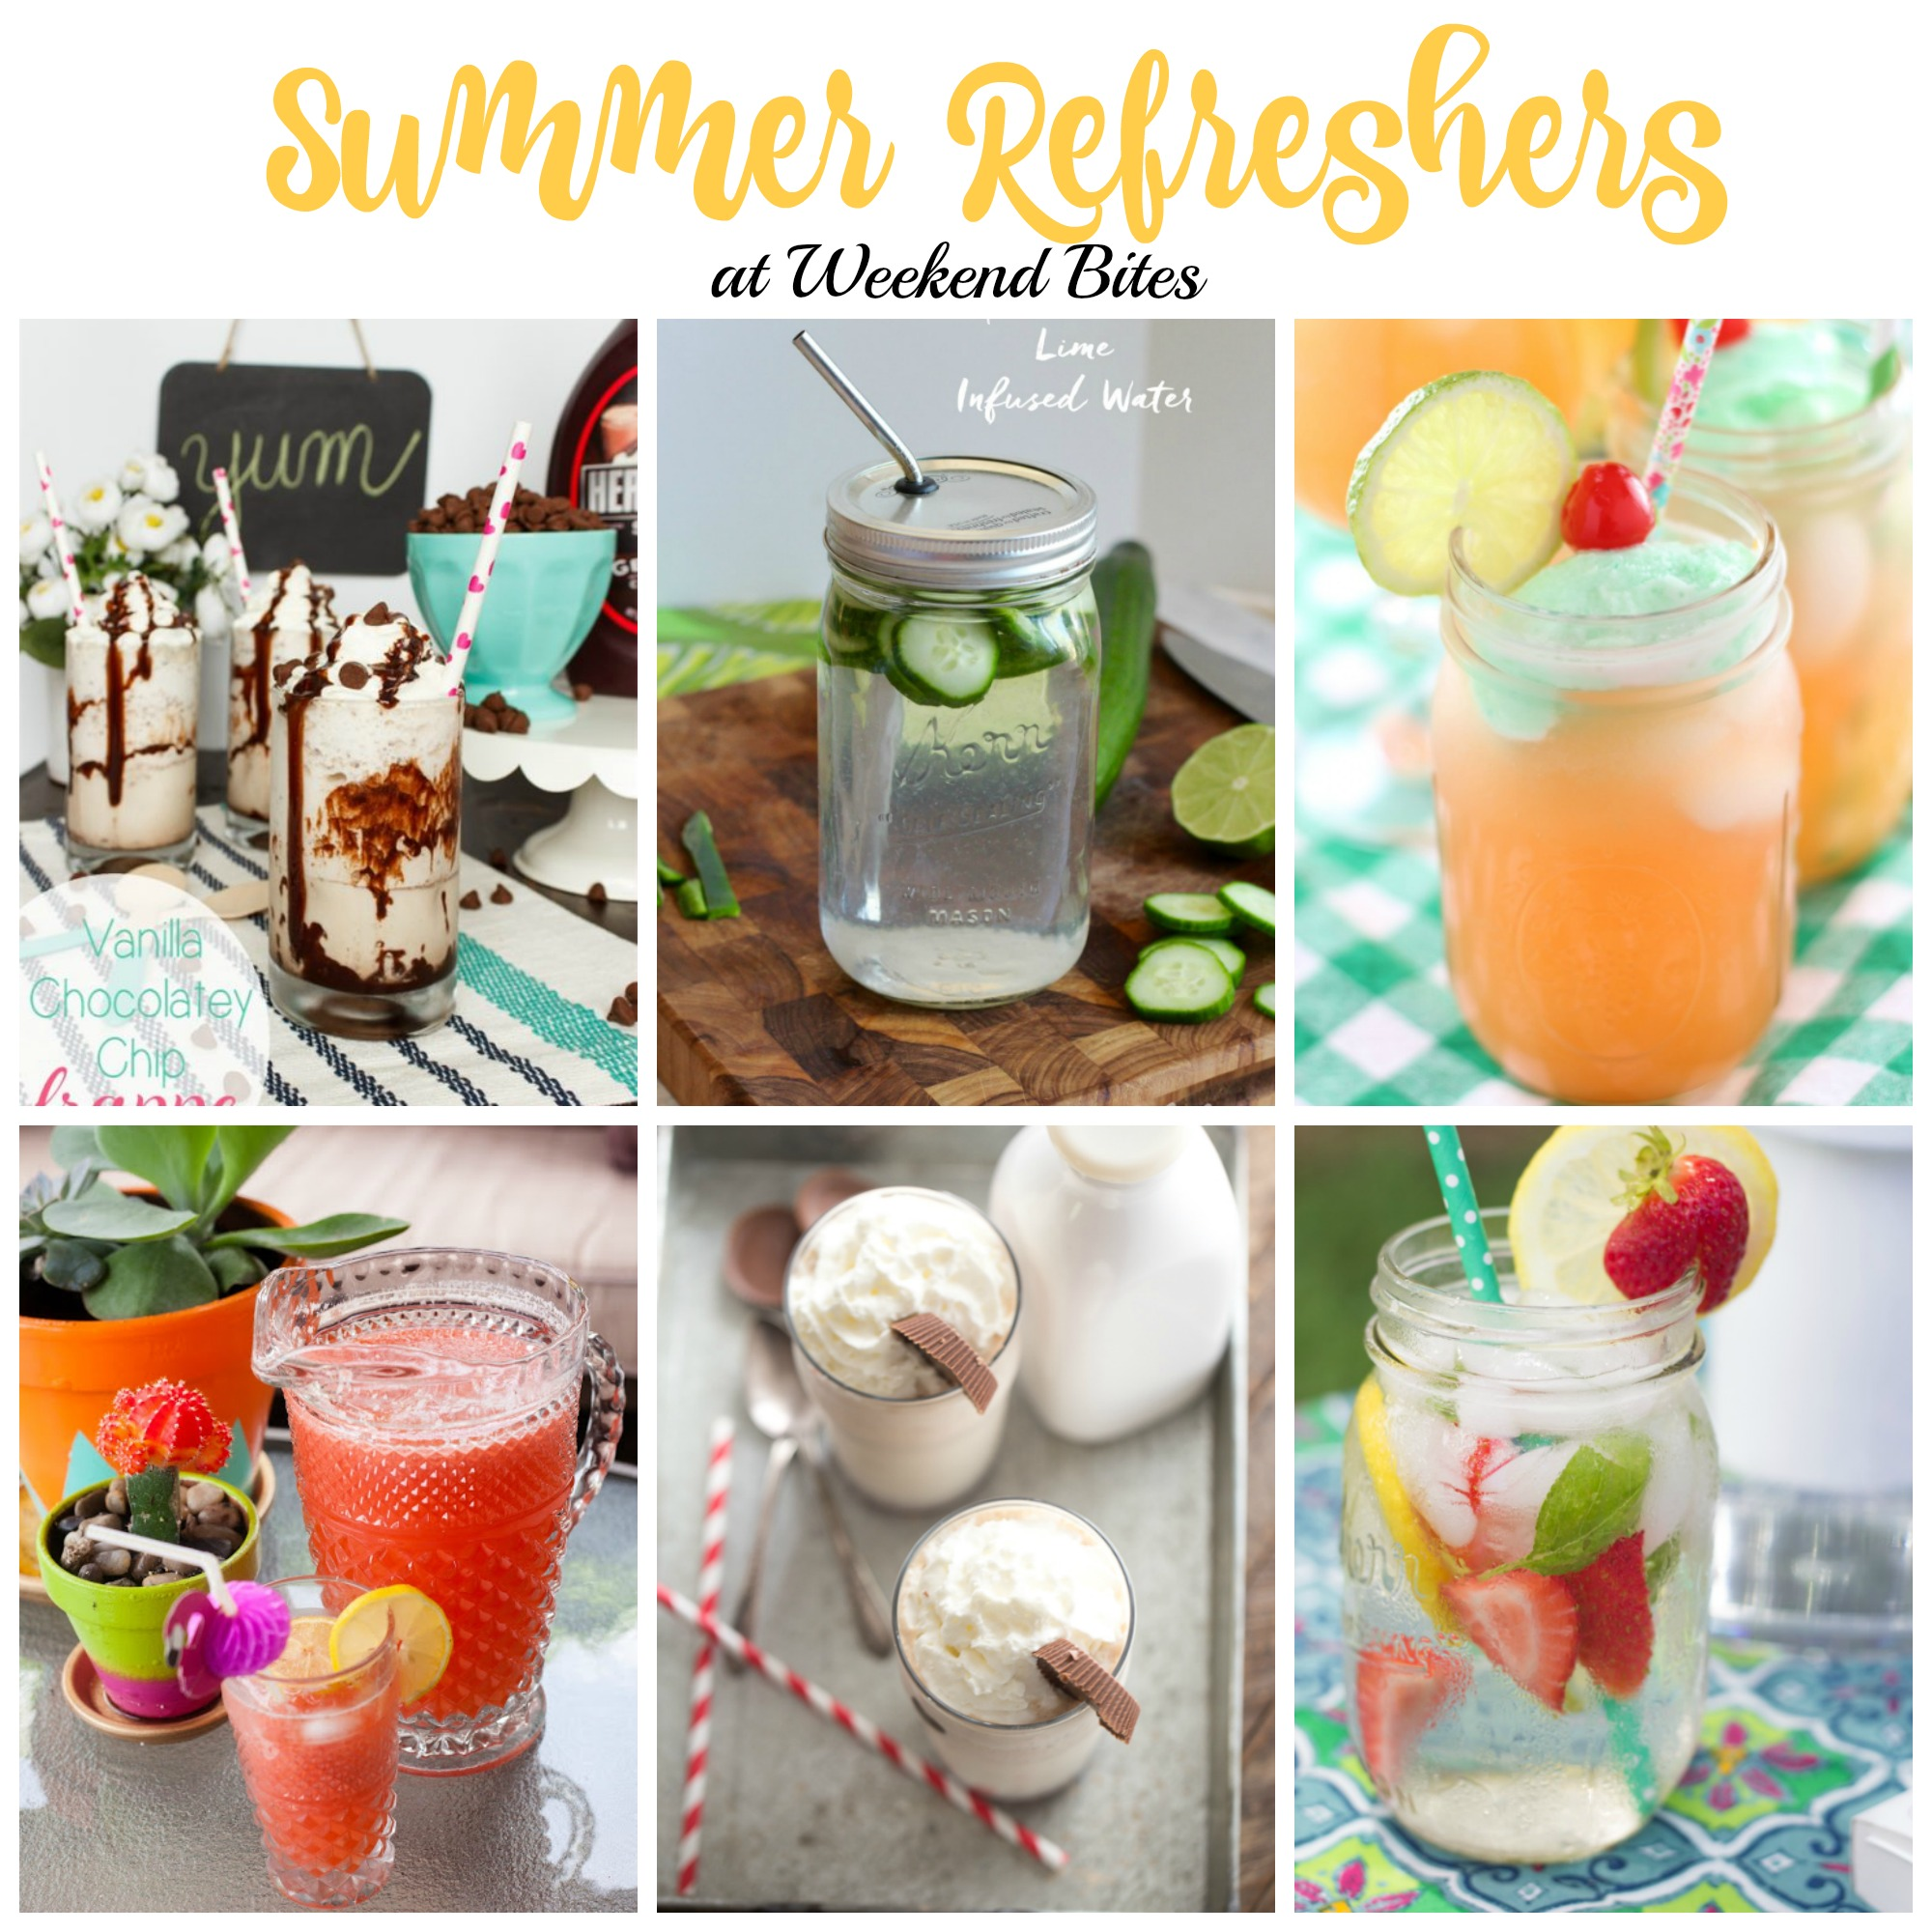 Summer Refreshers at Weekend Bites